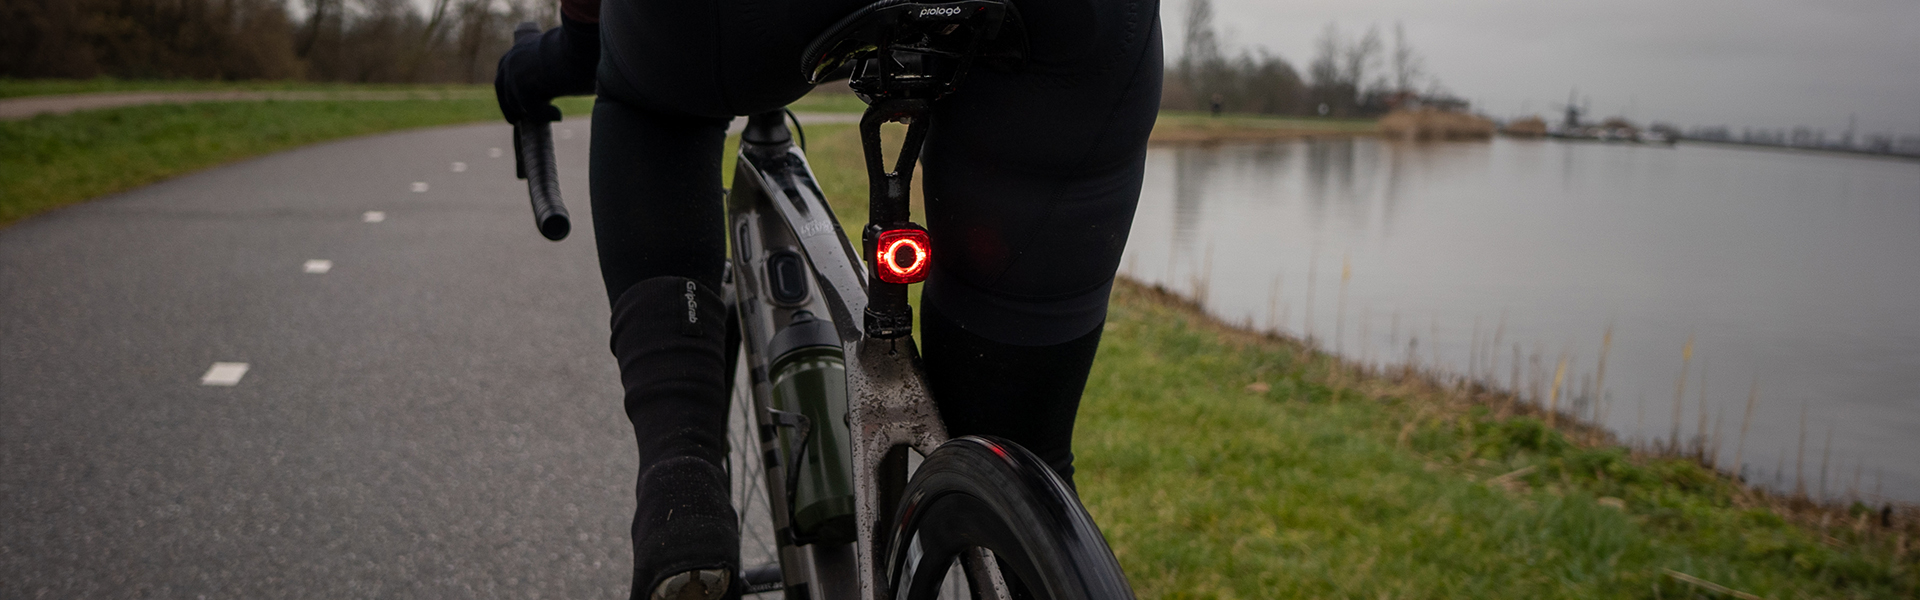 M3 Sate-lite StVZO approved bike rear light for ebike, escooter and hub dynamo